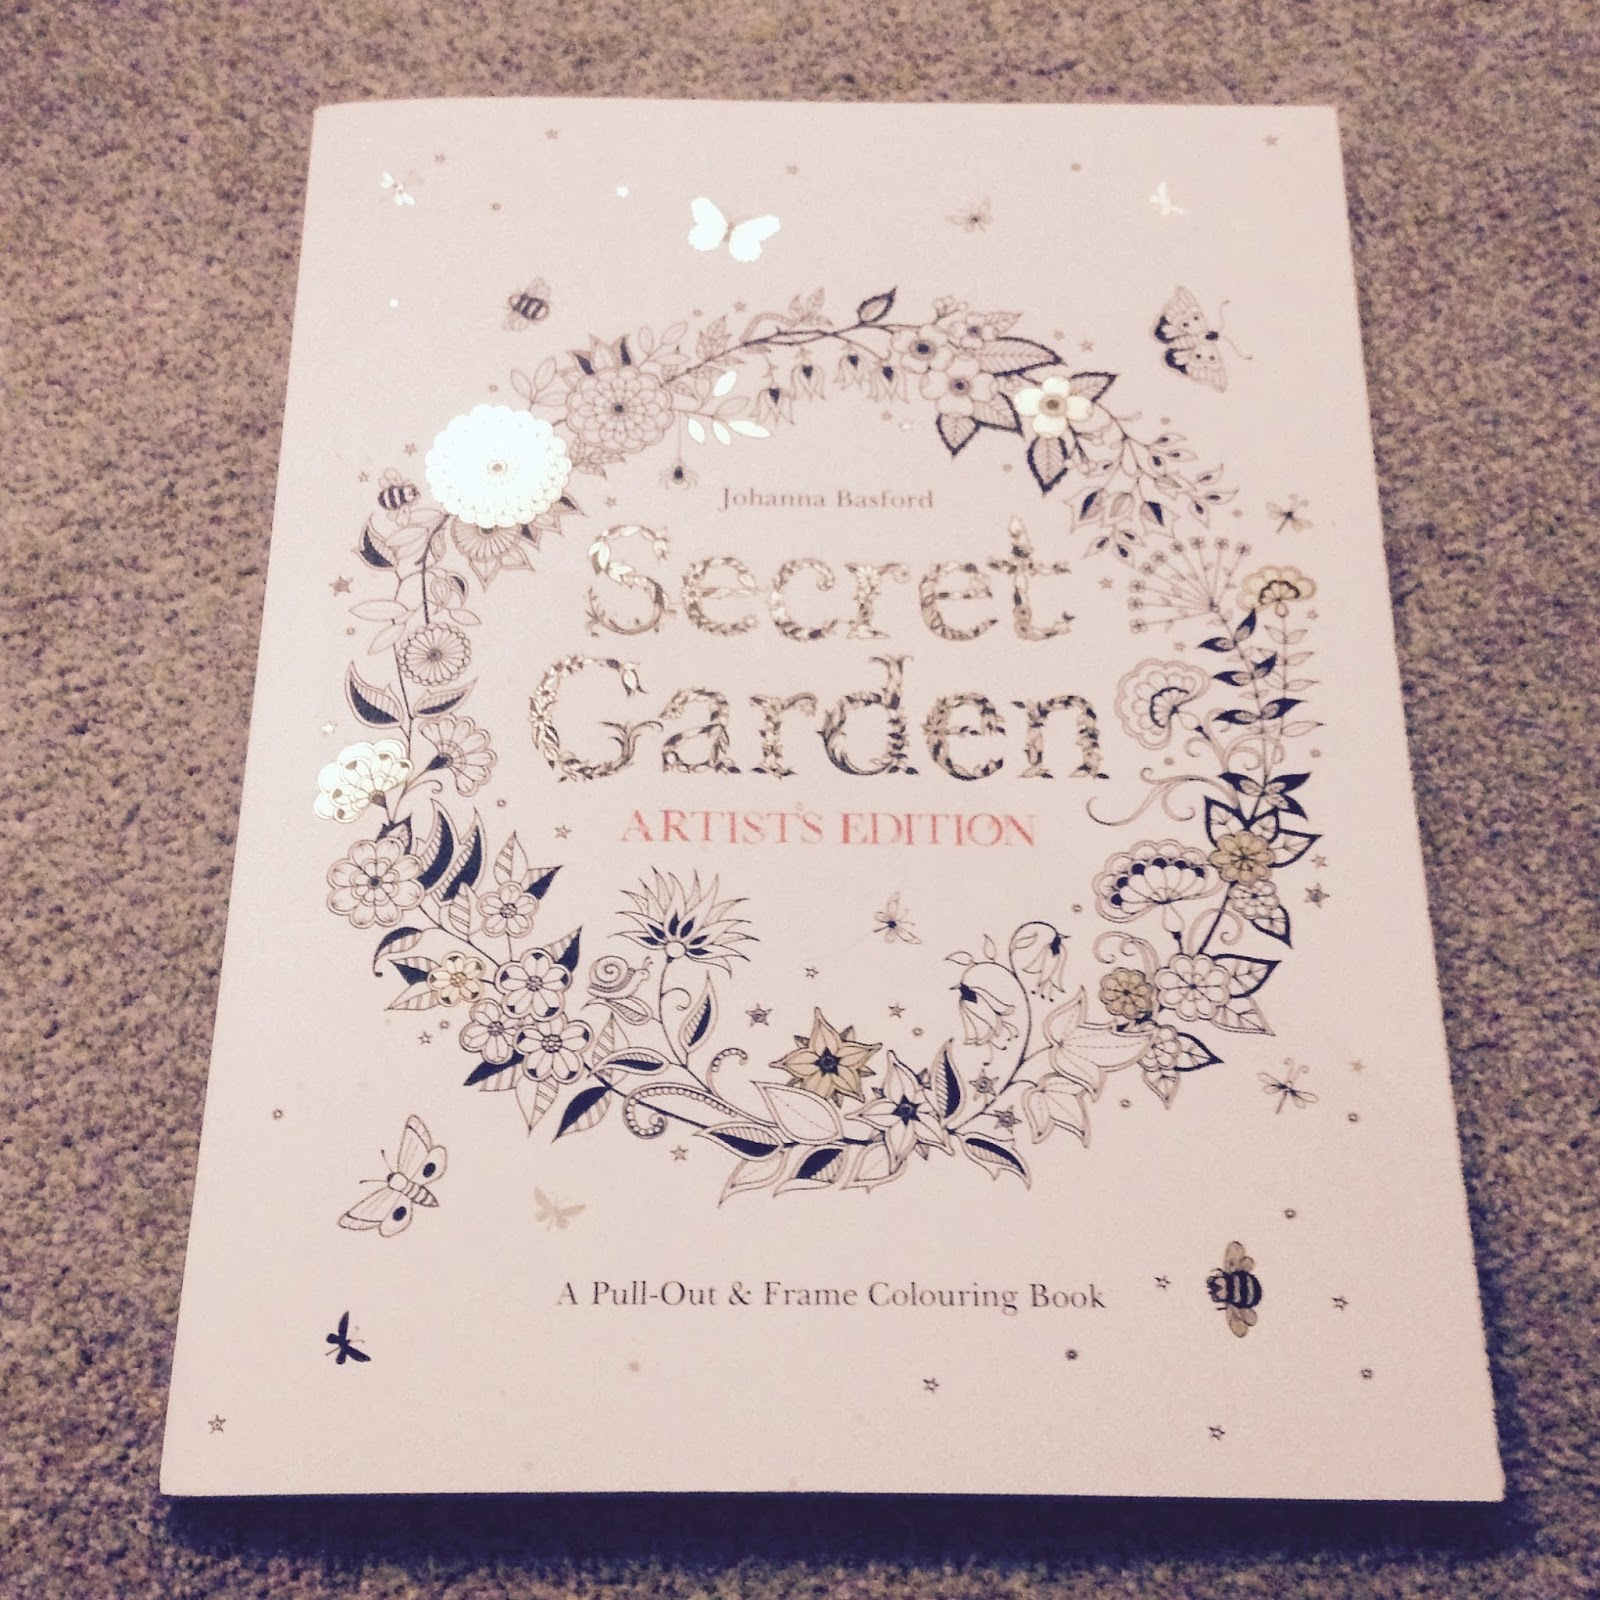 Secret garden colouring in book nz - Anyway Seeing As Reviewing This Type Of Book Isn T Really My Forte I M Going To Pepper This Post With Pictures So That The Pretty Will Distract You From My